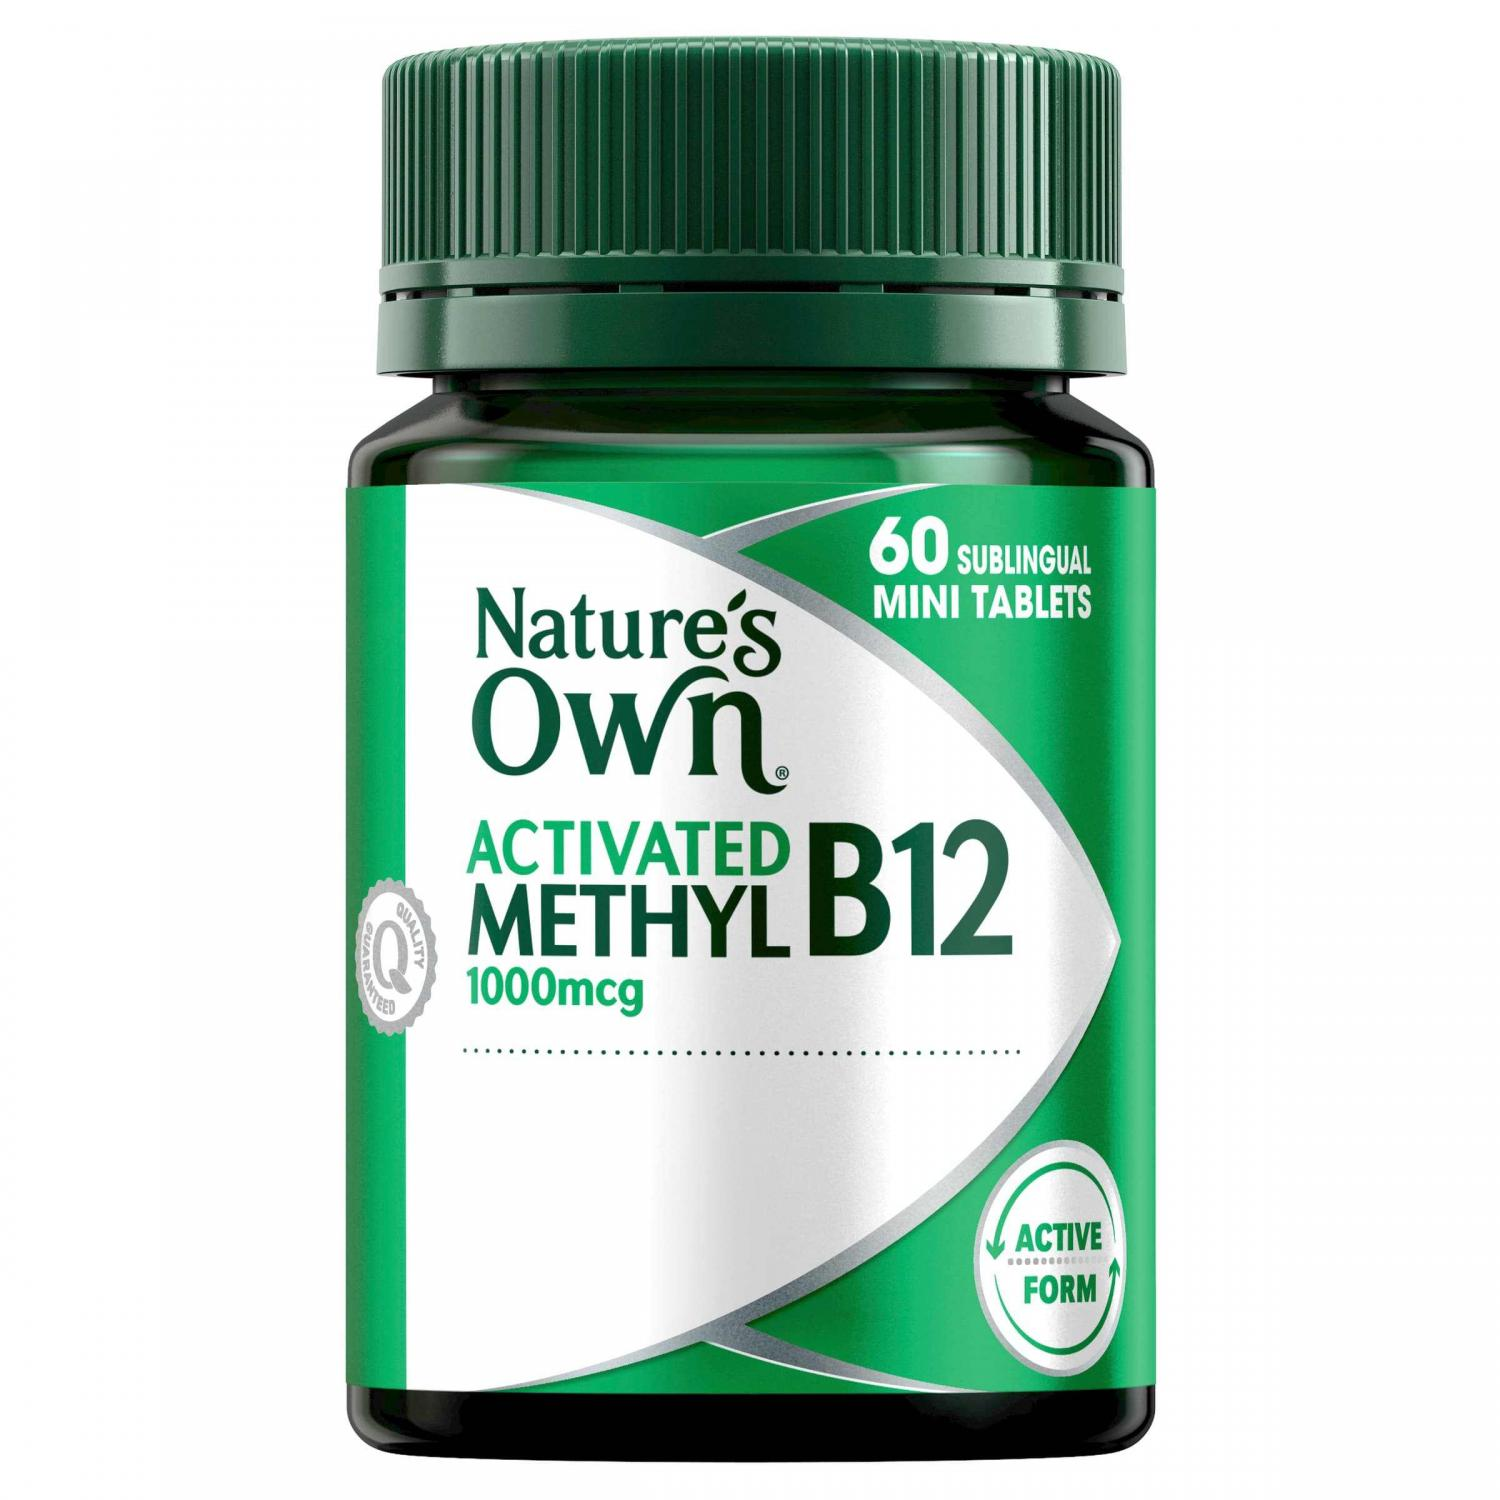 Thumbnail for Nature's Own Activated Methyl B12 1000mcg 60 tablets